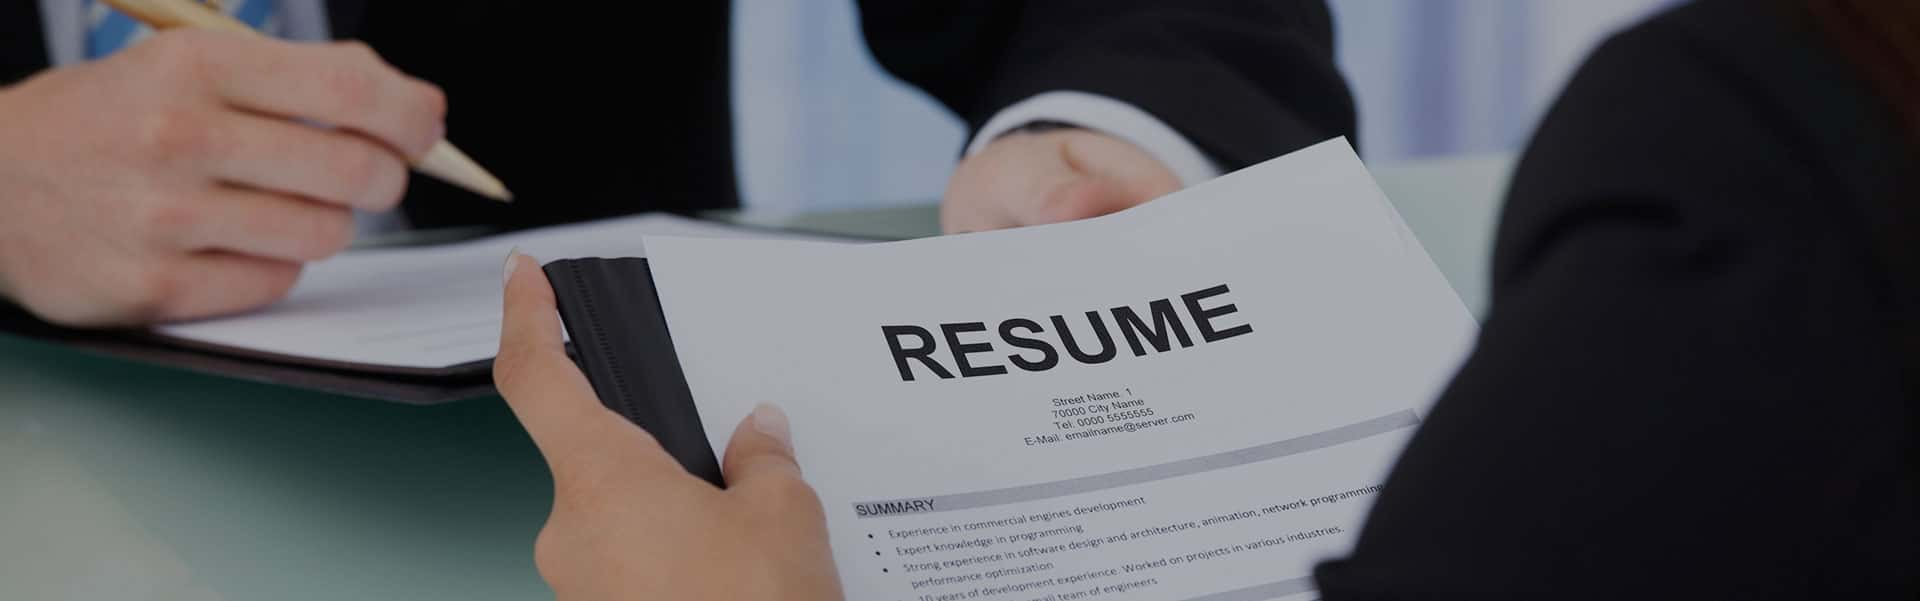 How to Write a Professional Resume – [2019 updated] Guide